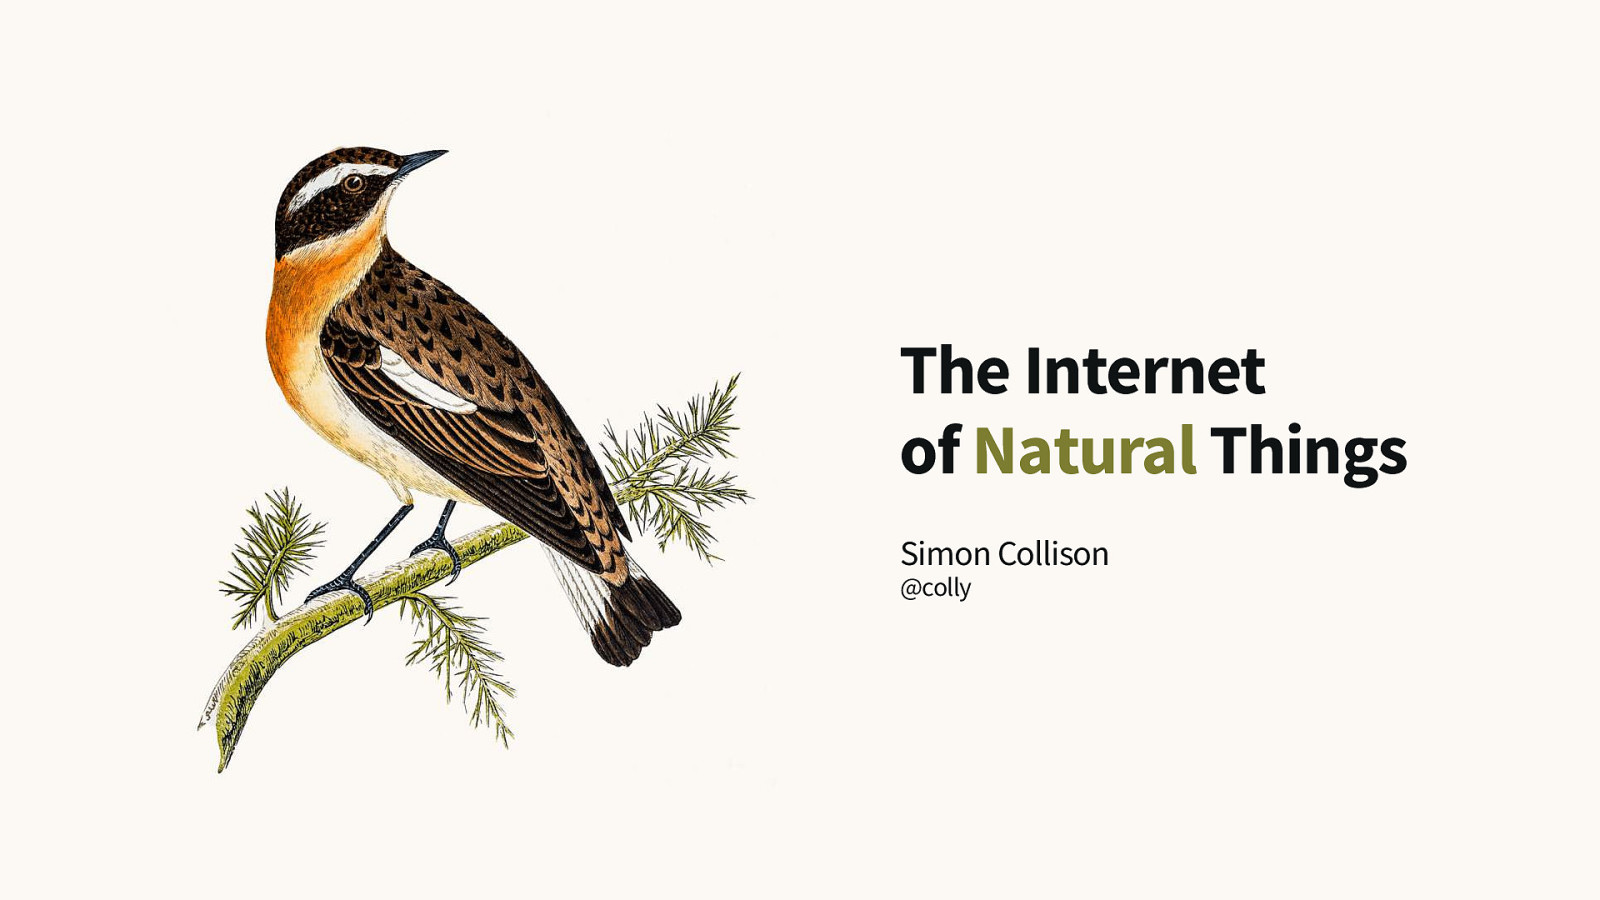 The Internet of Natural Things